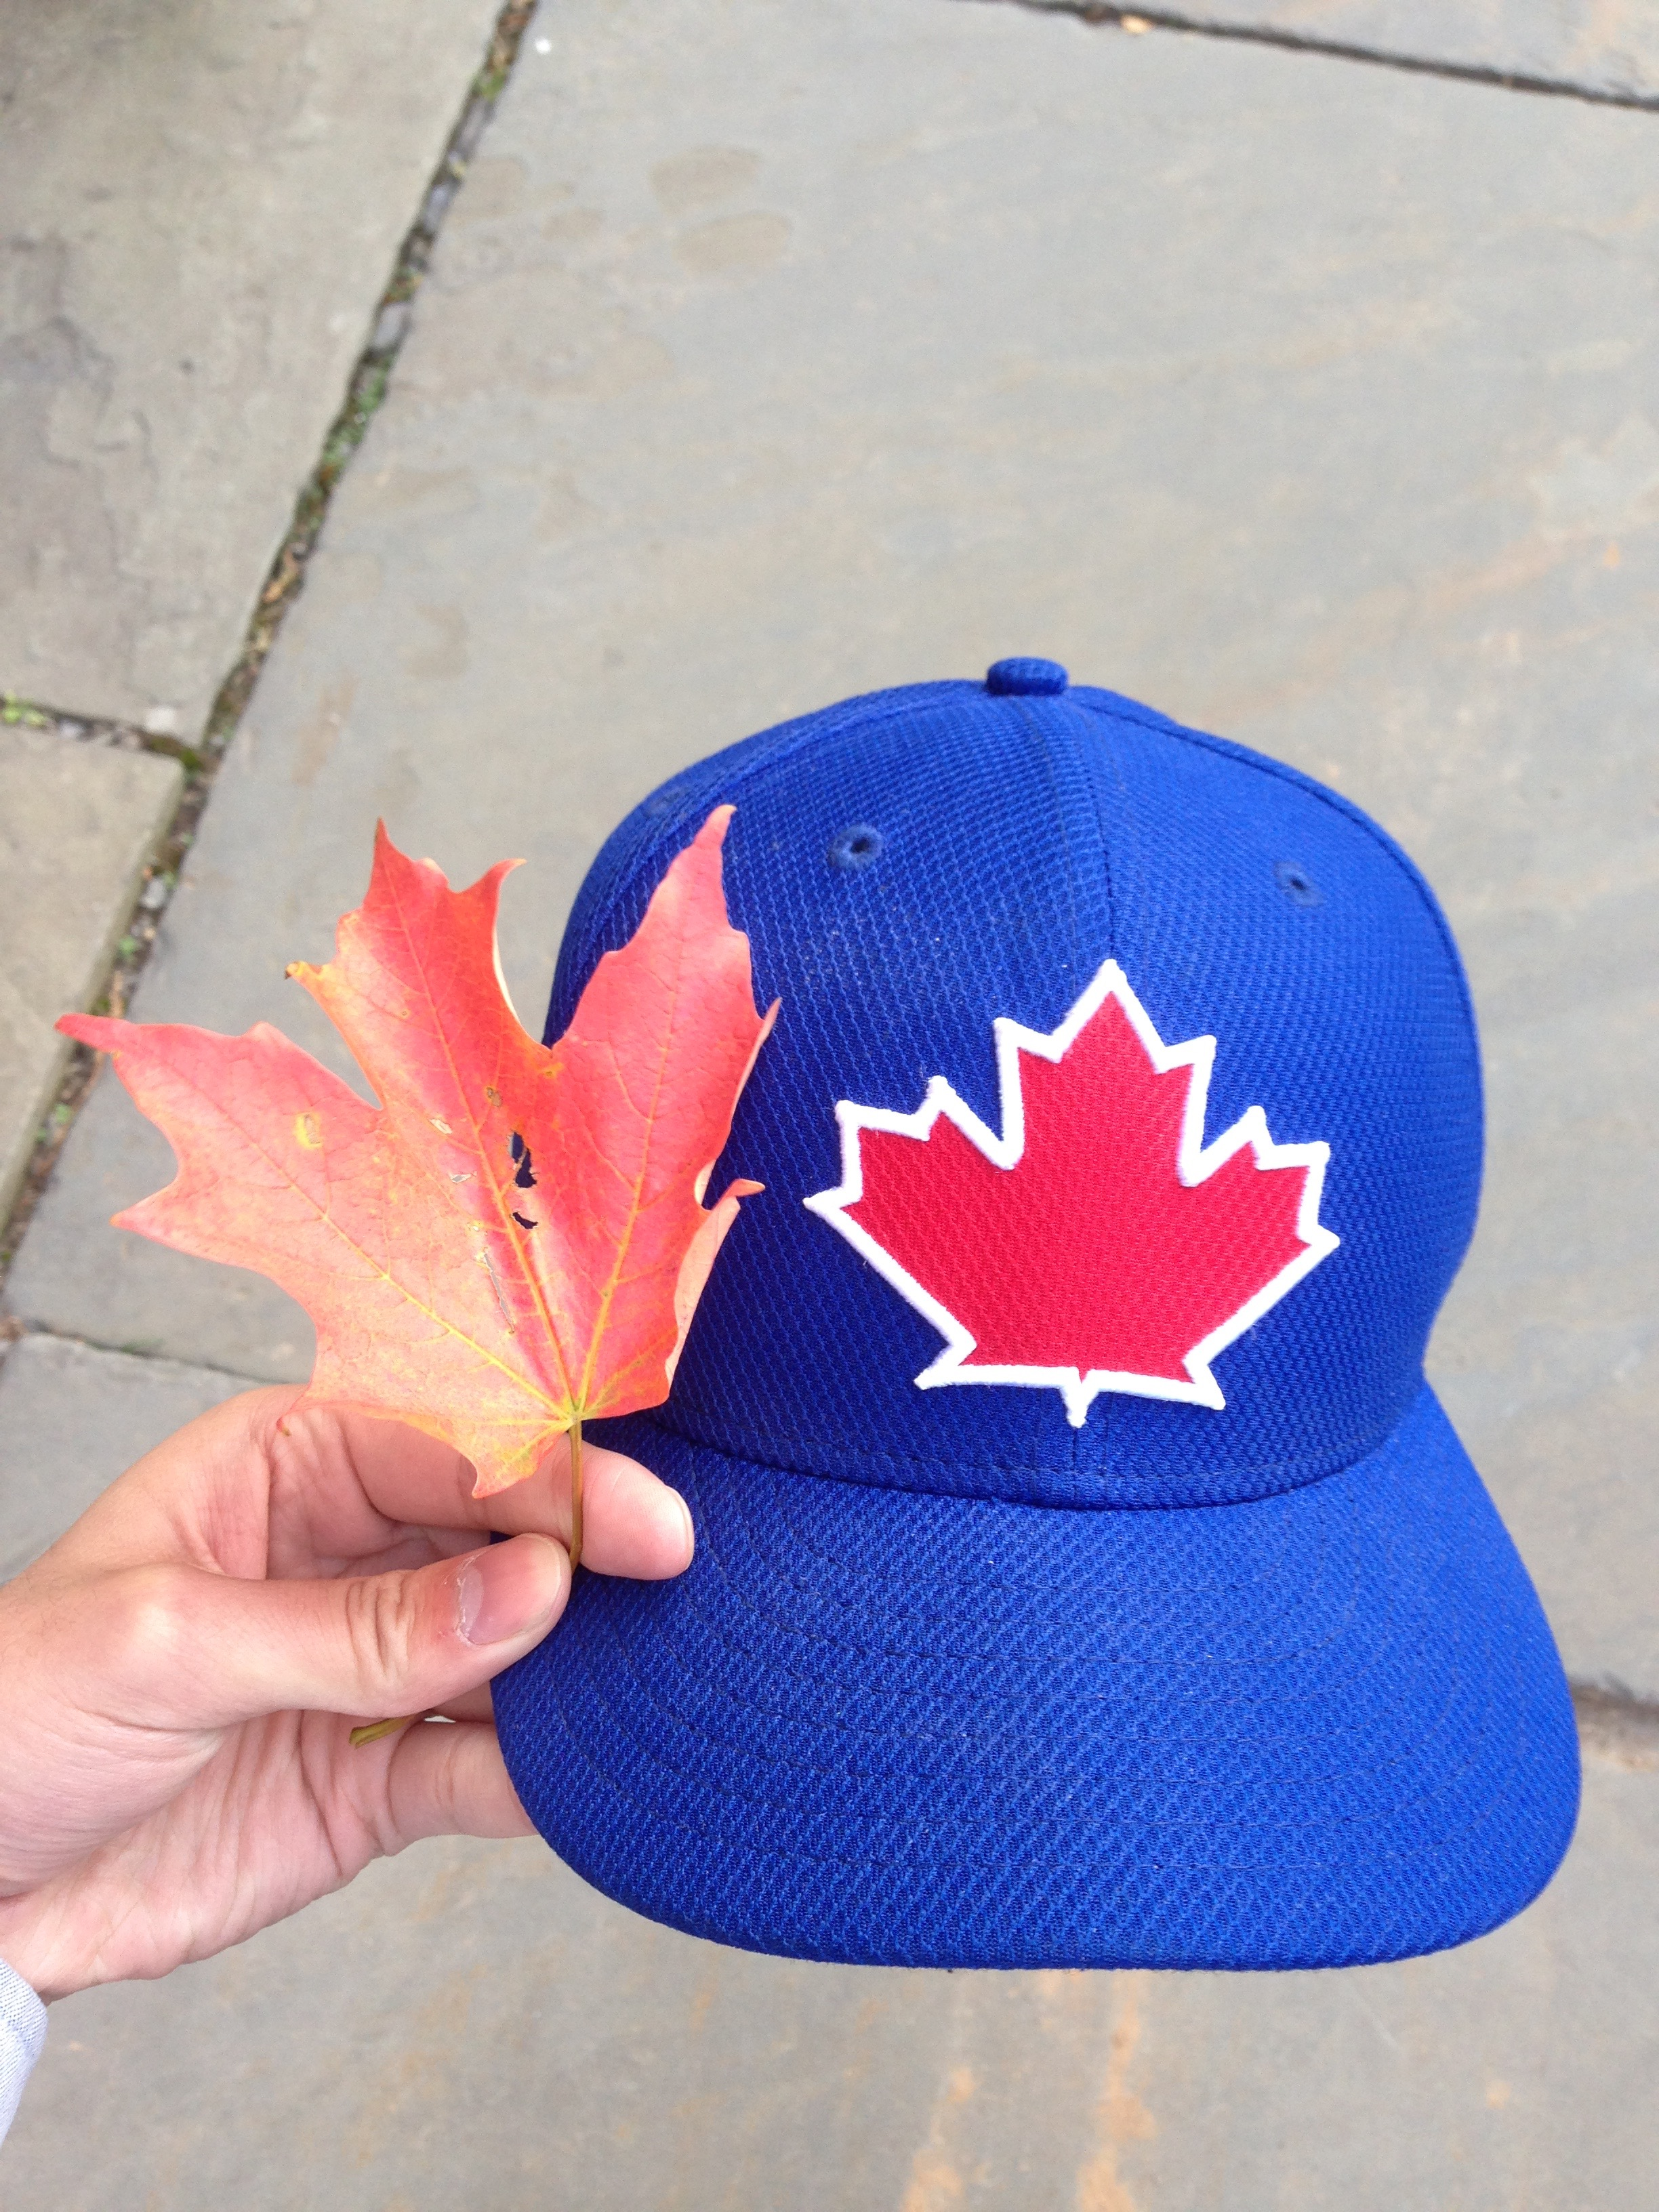 A photo of a blue hat with a maple leaf, next to a real maple leaf